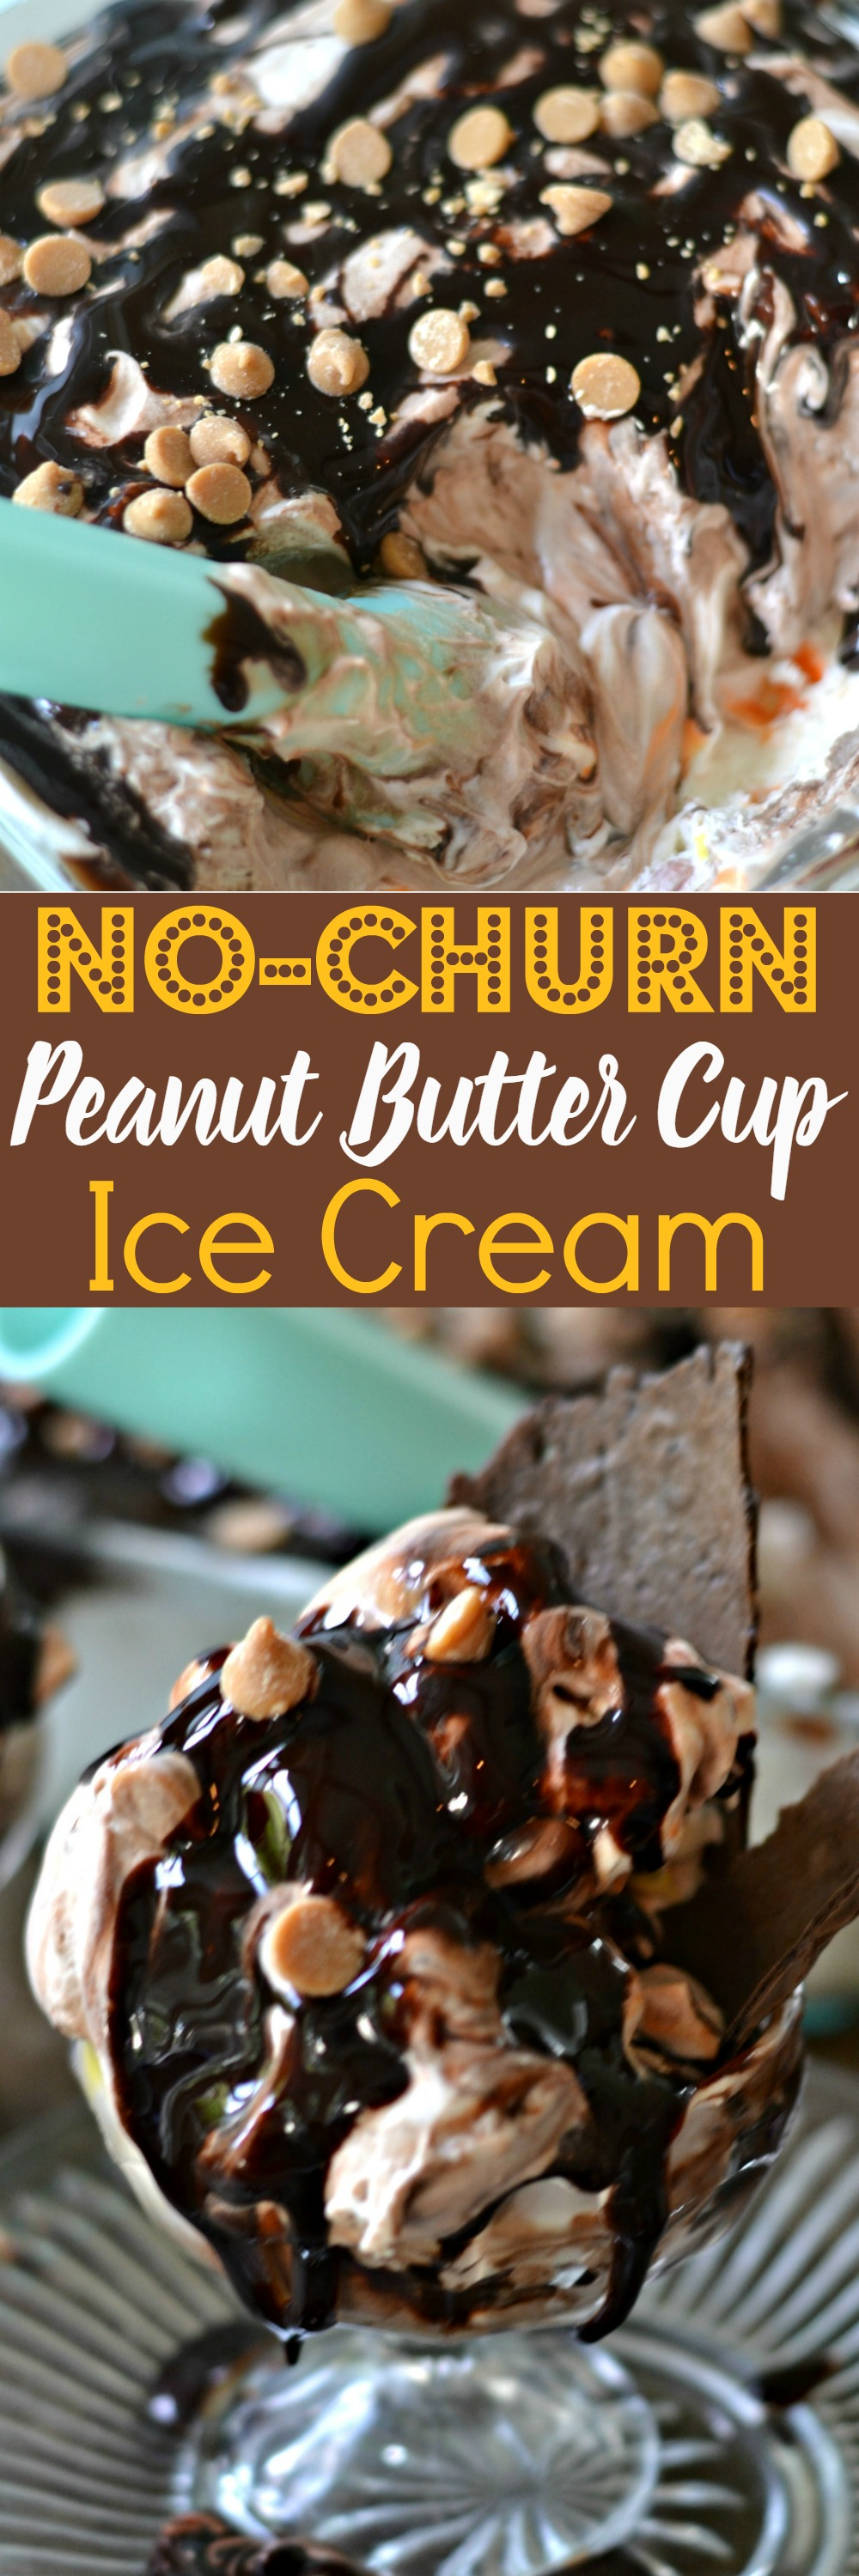 No-Churn Peanut Butter Cup Ice Cream